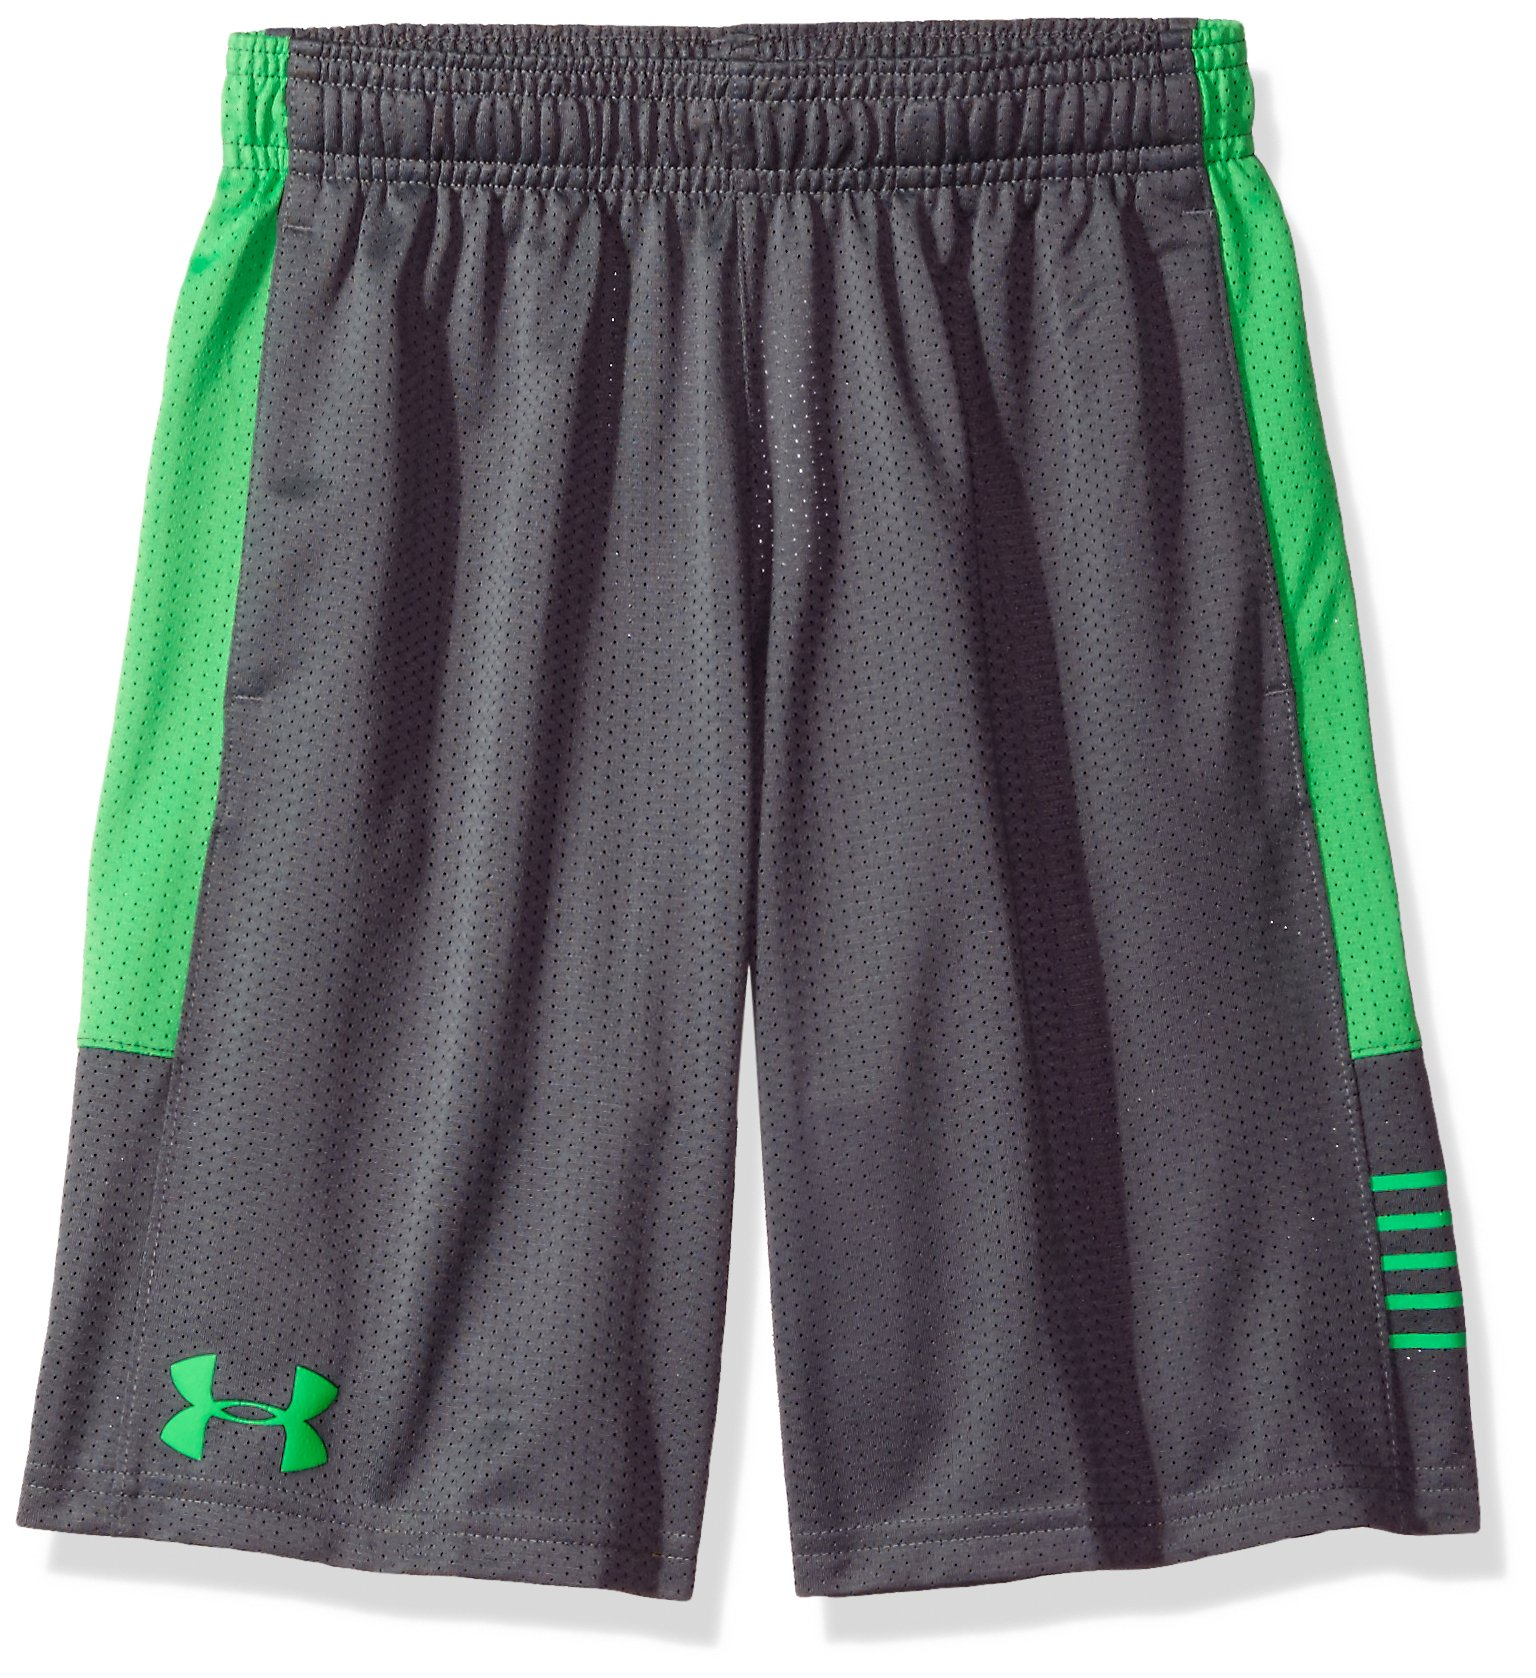 Under Armour Boys' Train To Game Shorts,Graphite (041)/Lime Twist, Youth X-Small